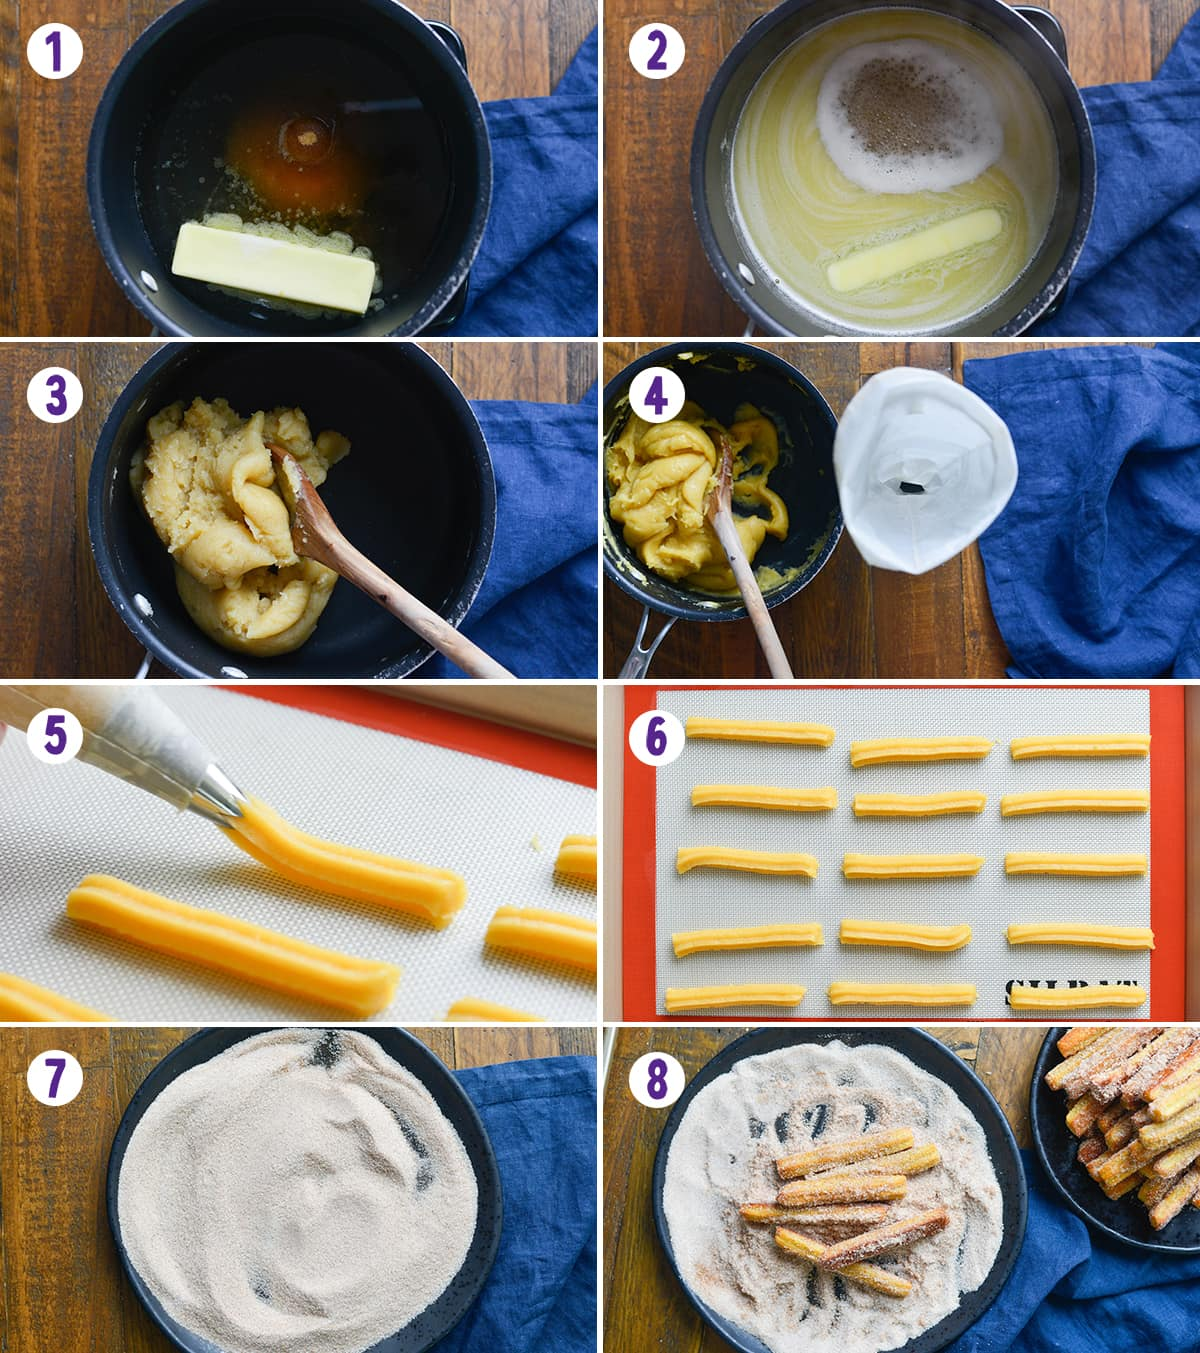 Collage of 8 images showing the process of making churros.